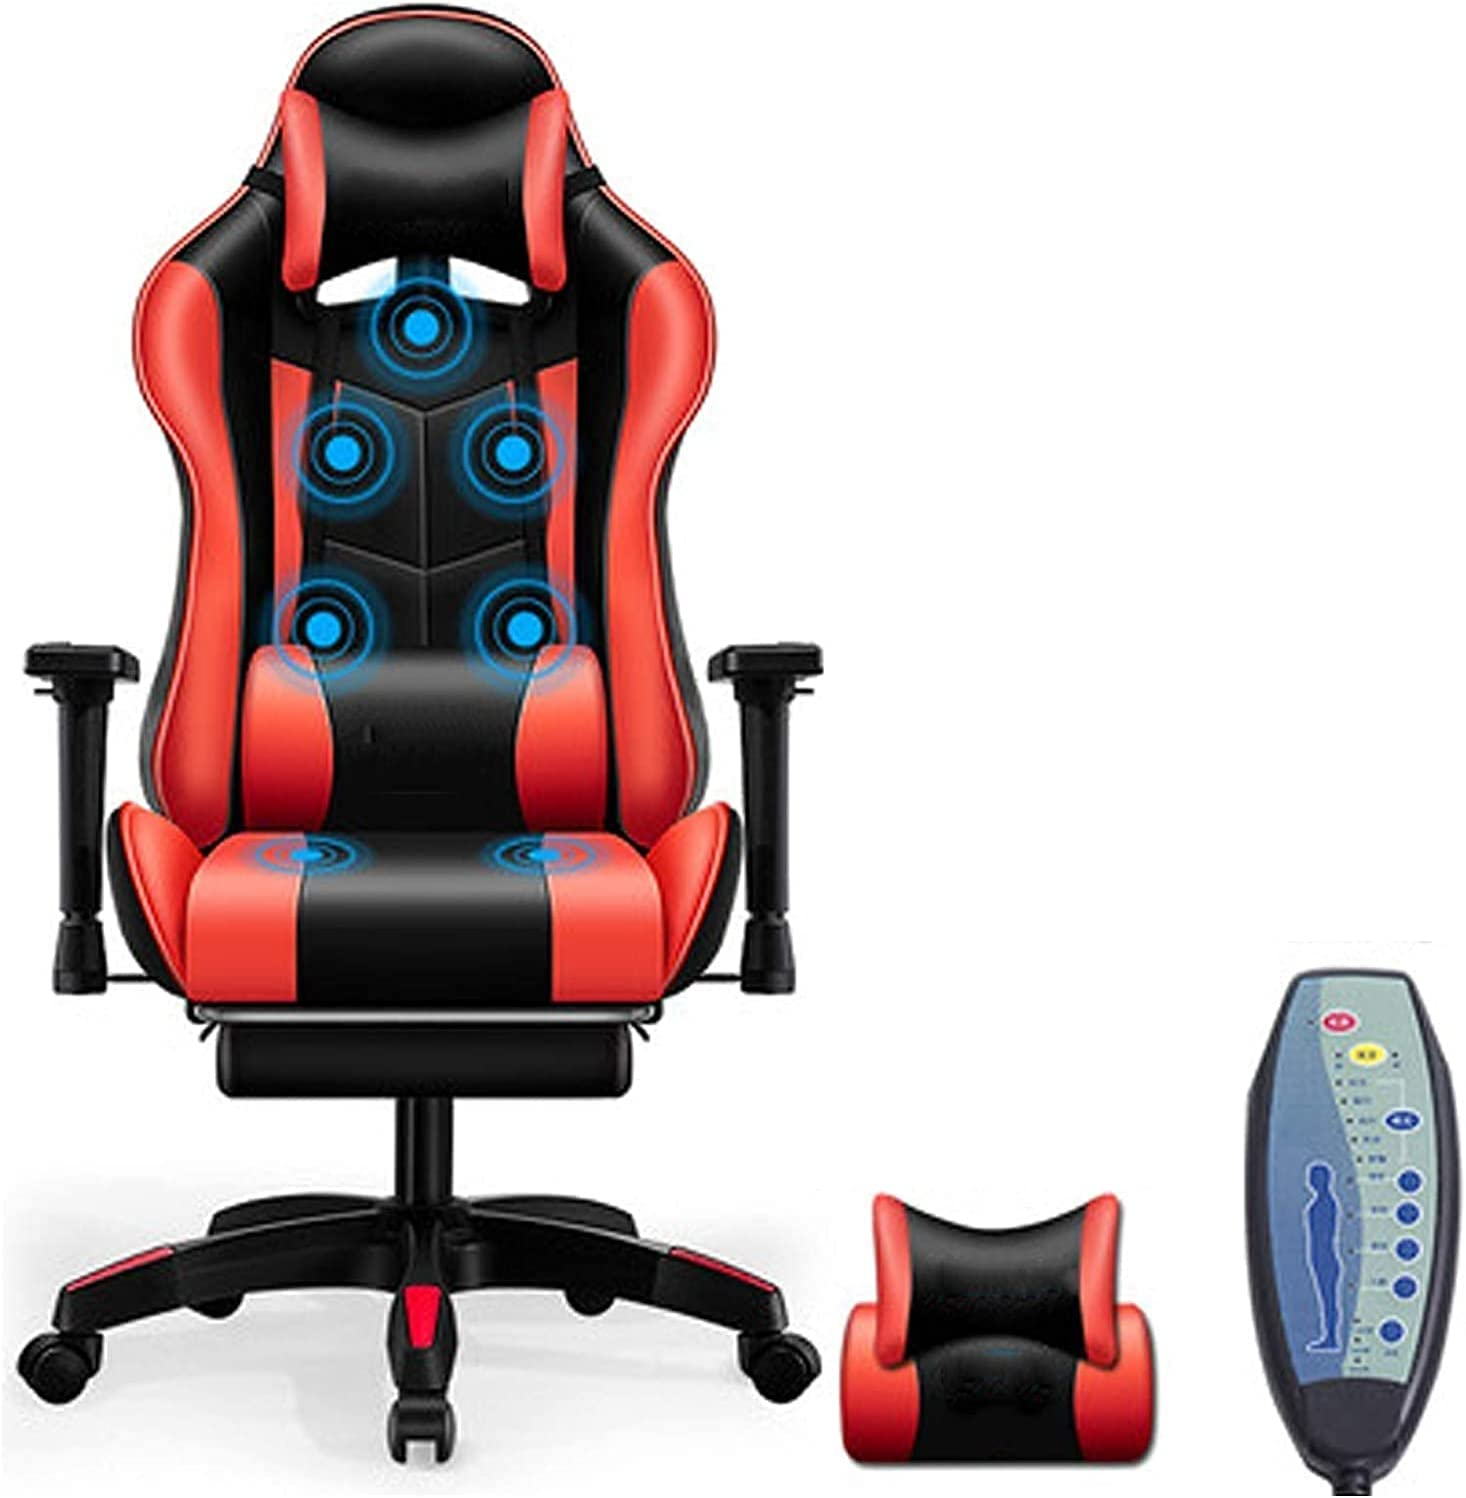 JYHZ Virginia Limited Special Price Beach Mall Gaming Chair Massage Game Large Ergonomic Ga Computer